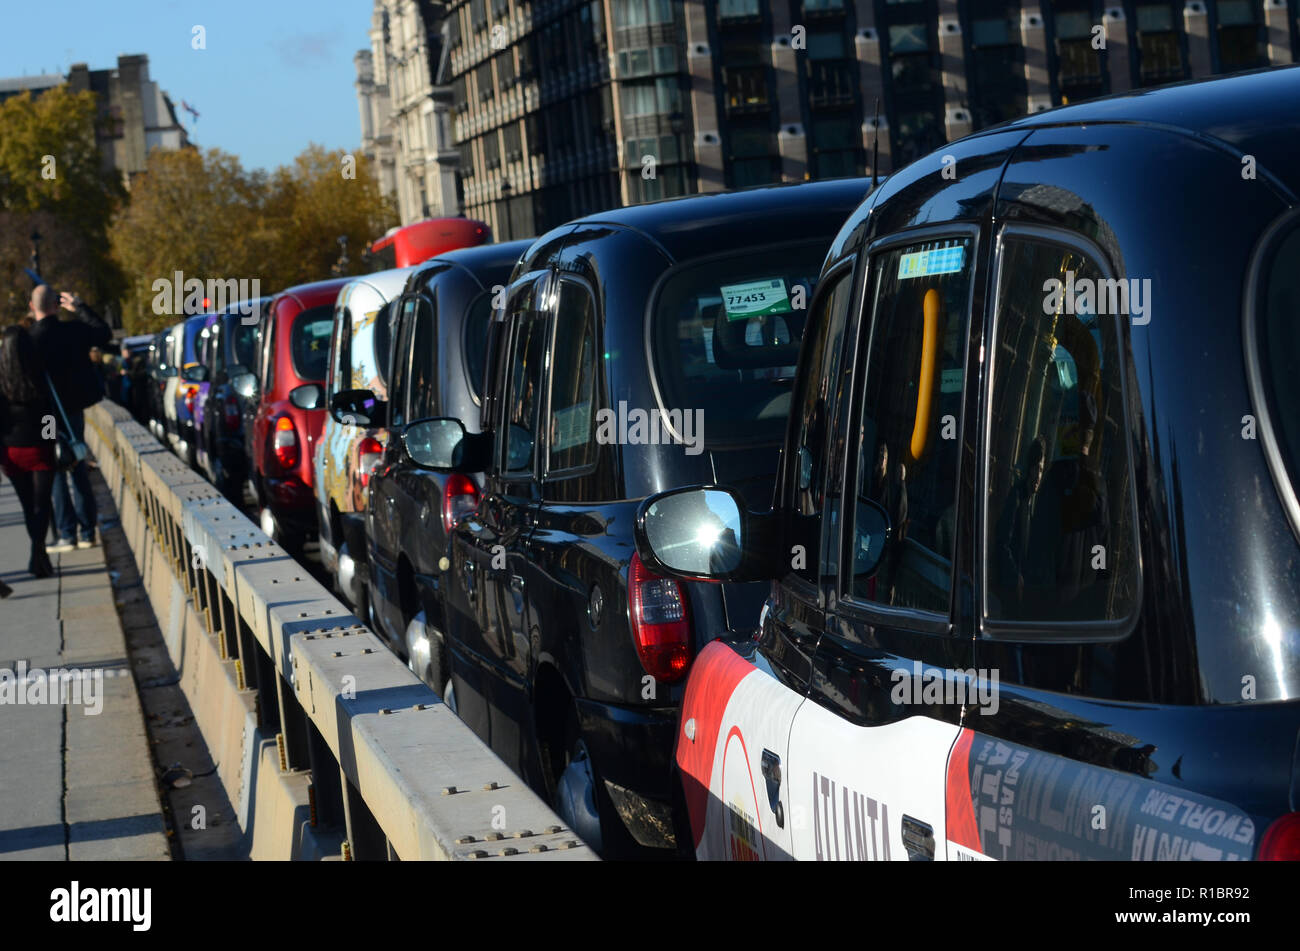 Shuttle Cabs Stock Photos & Shuttle Cabs Stock Images - Alamy